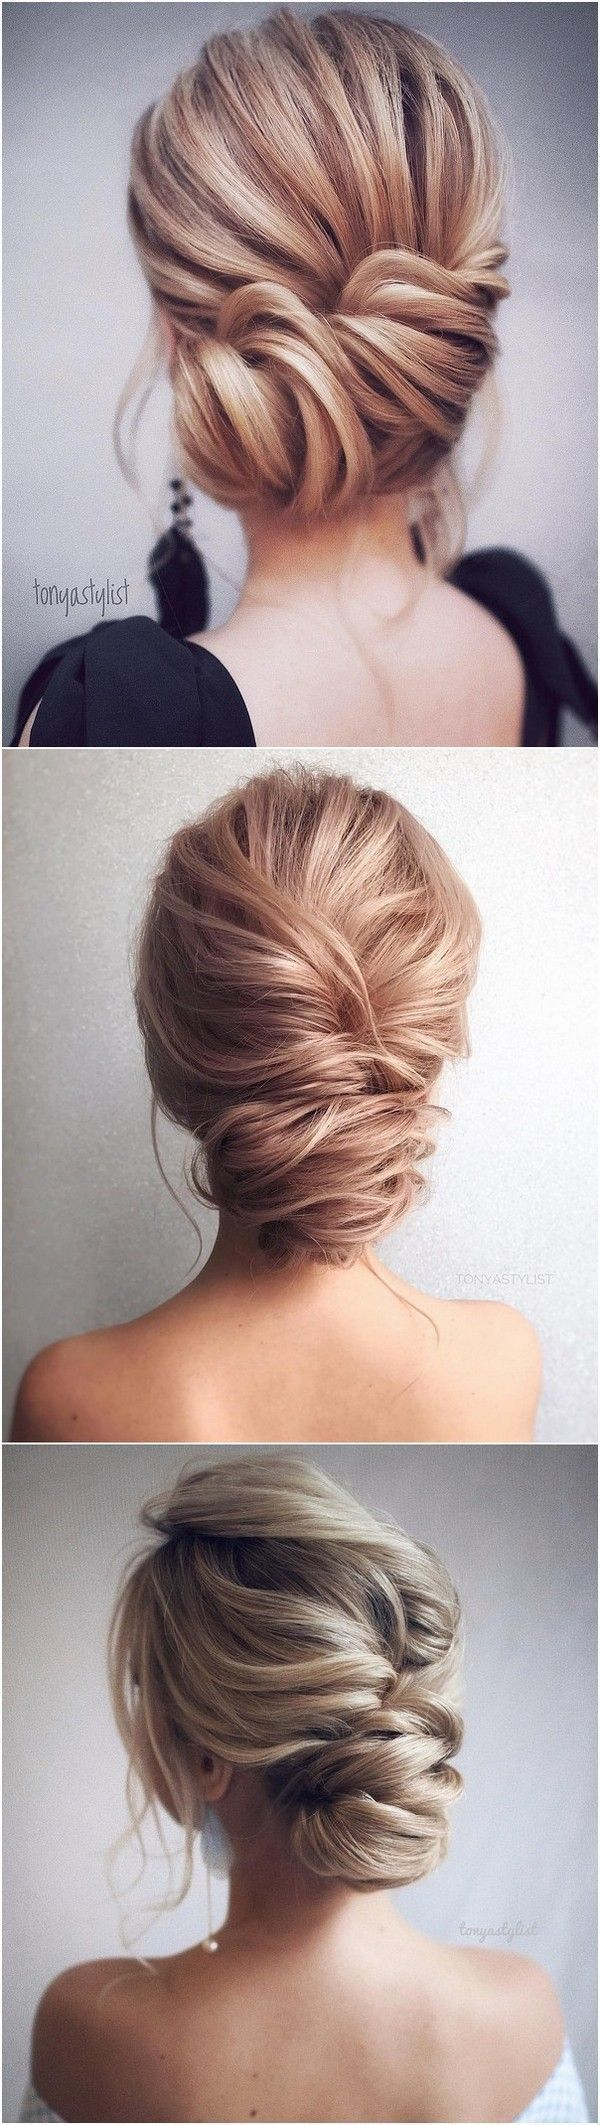 best hair images on pinterest hair ideas hair makeup and